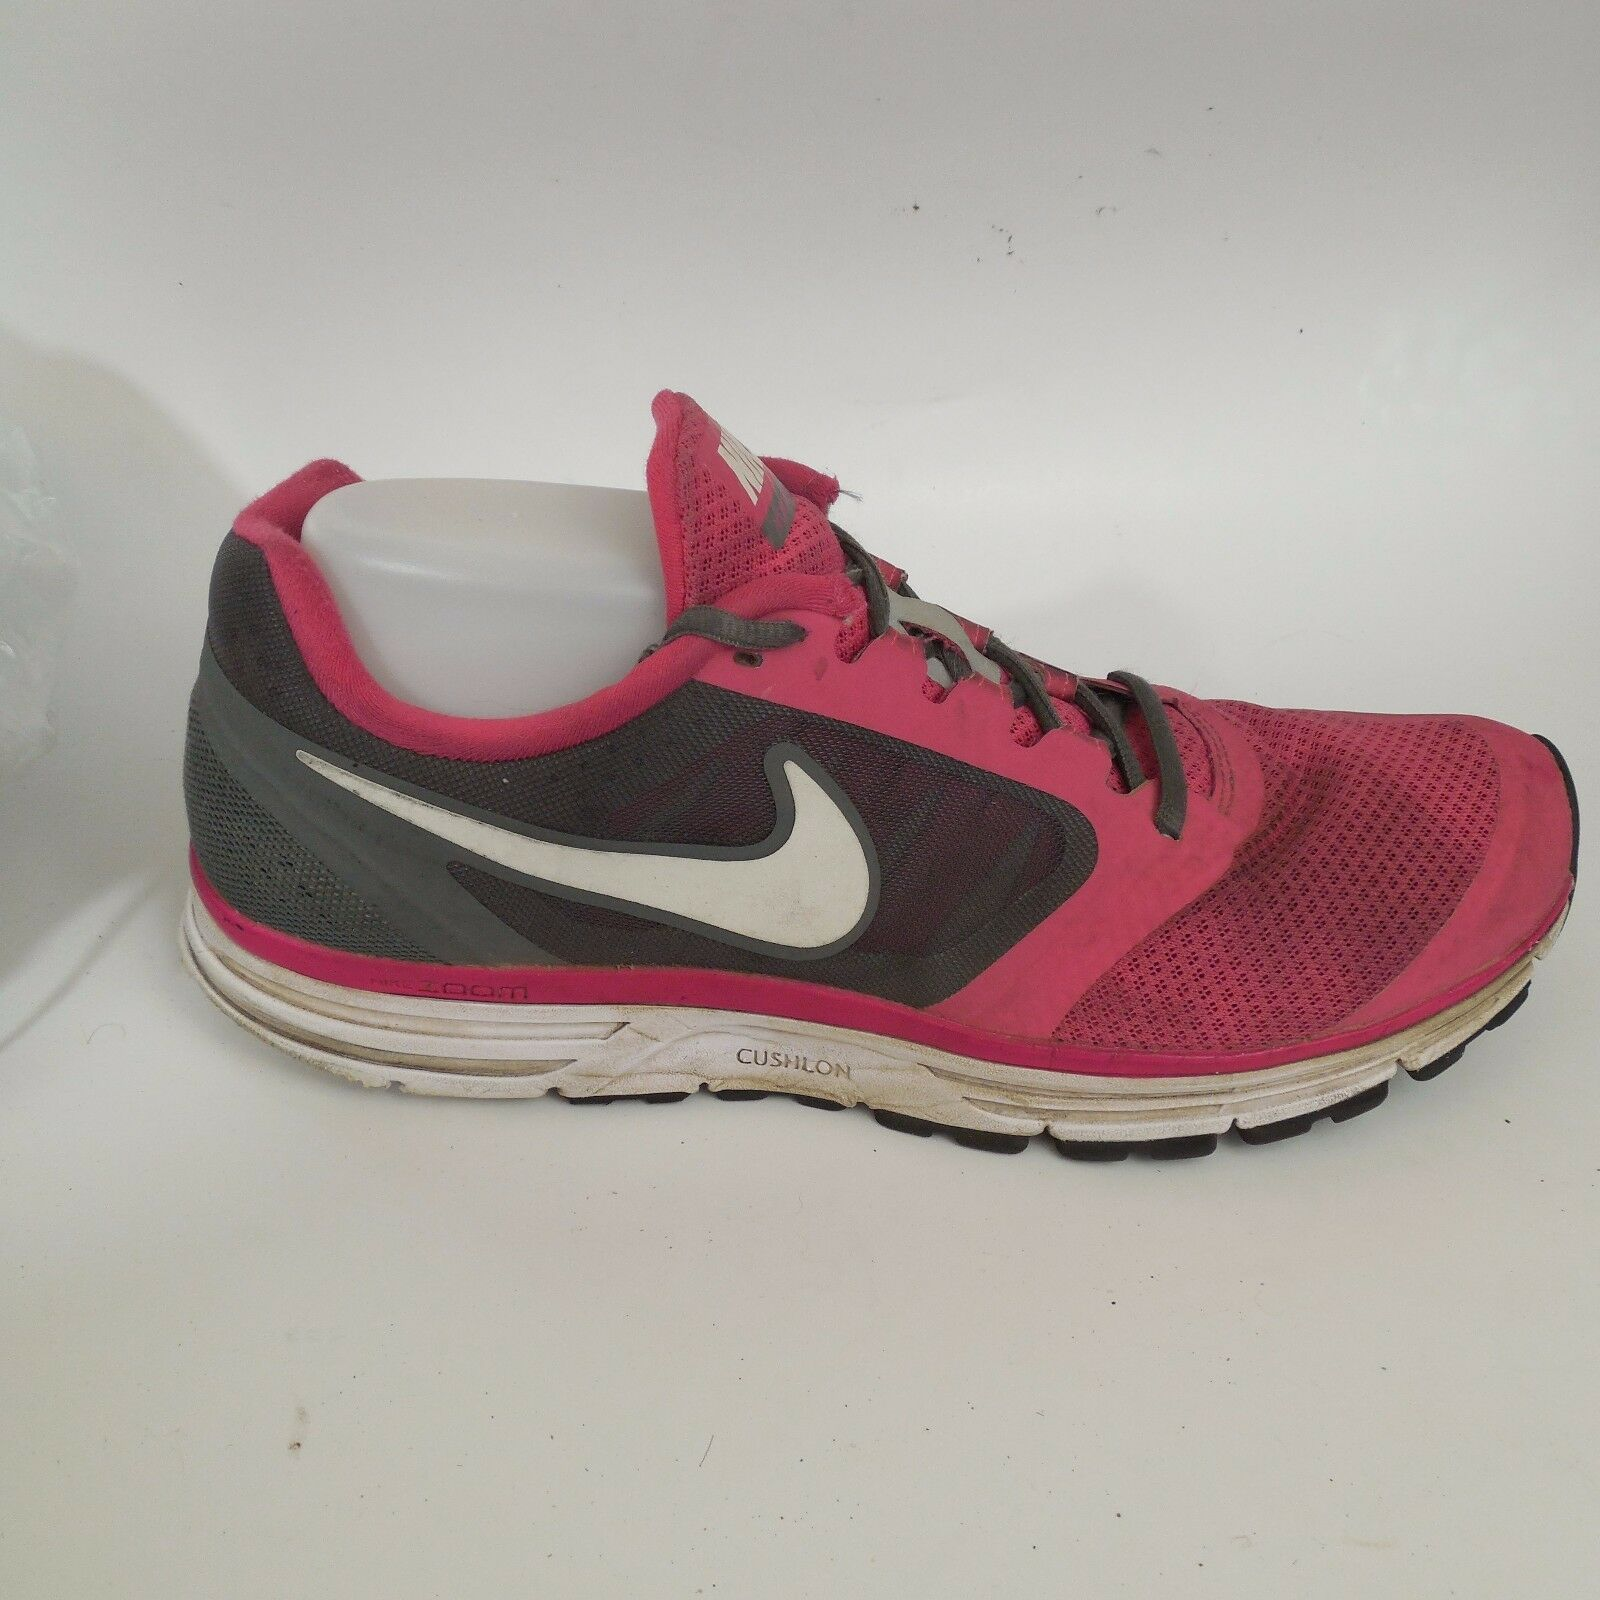 premium selection 1d9c2 79375 ... Womens Womens Womens Nike Vomero 8 Size 11.5 Med Pink Black Sneakers  582894 610 Preowned Shoes ...